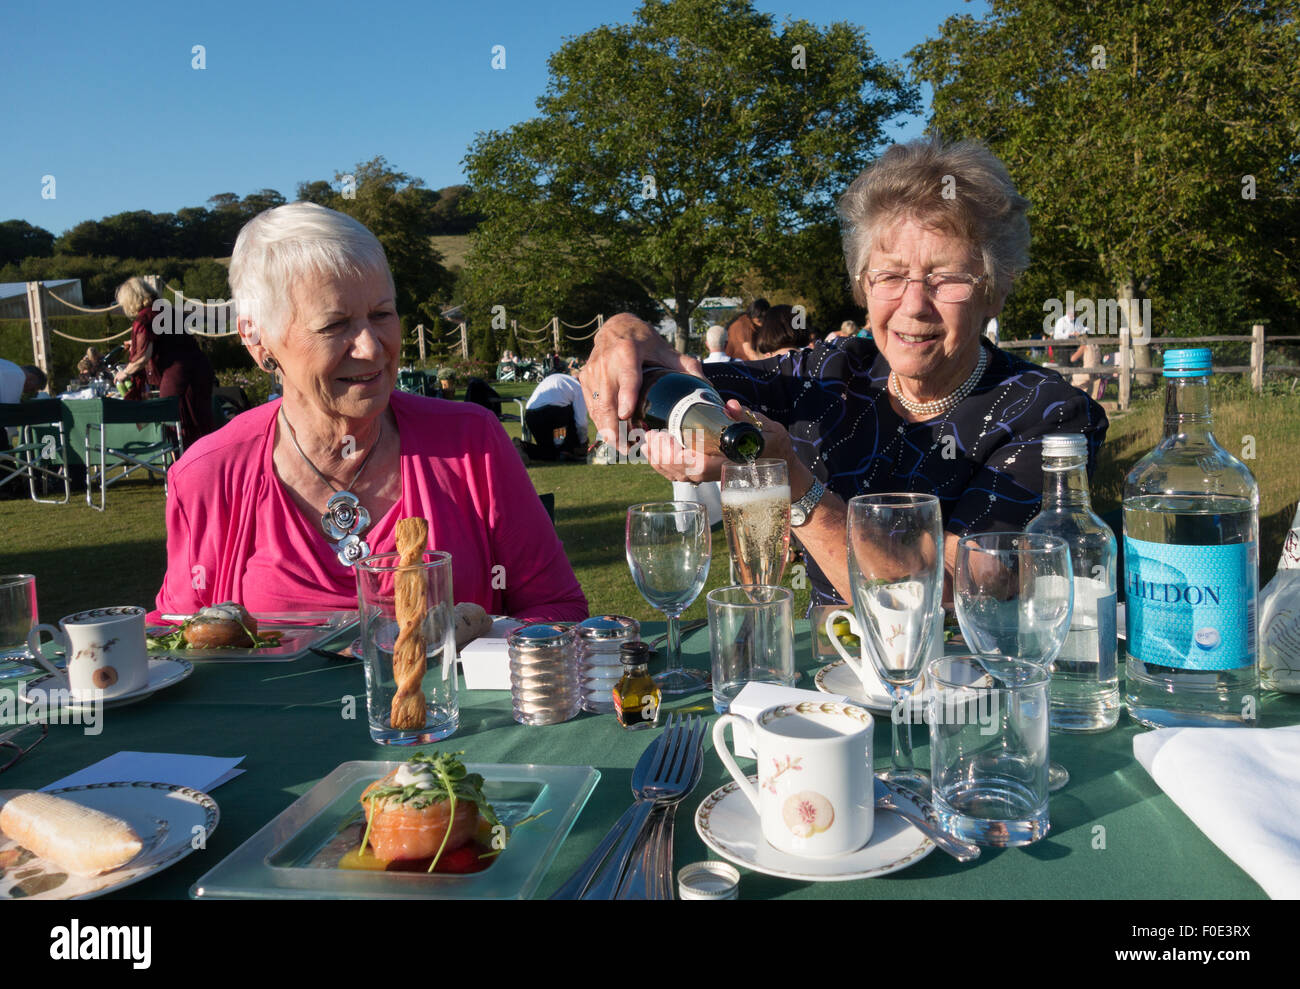 two-senior-elderly-women-having-fun-with-a-champagne-picnic-glyndebourne-F0E3RX.jpg